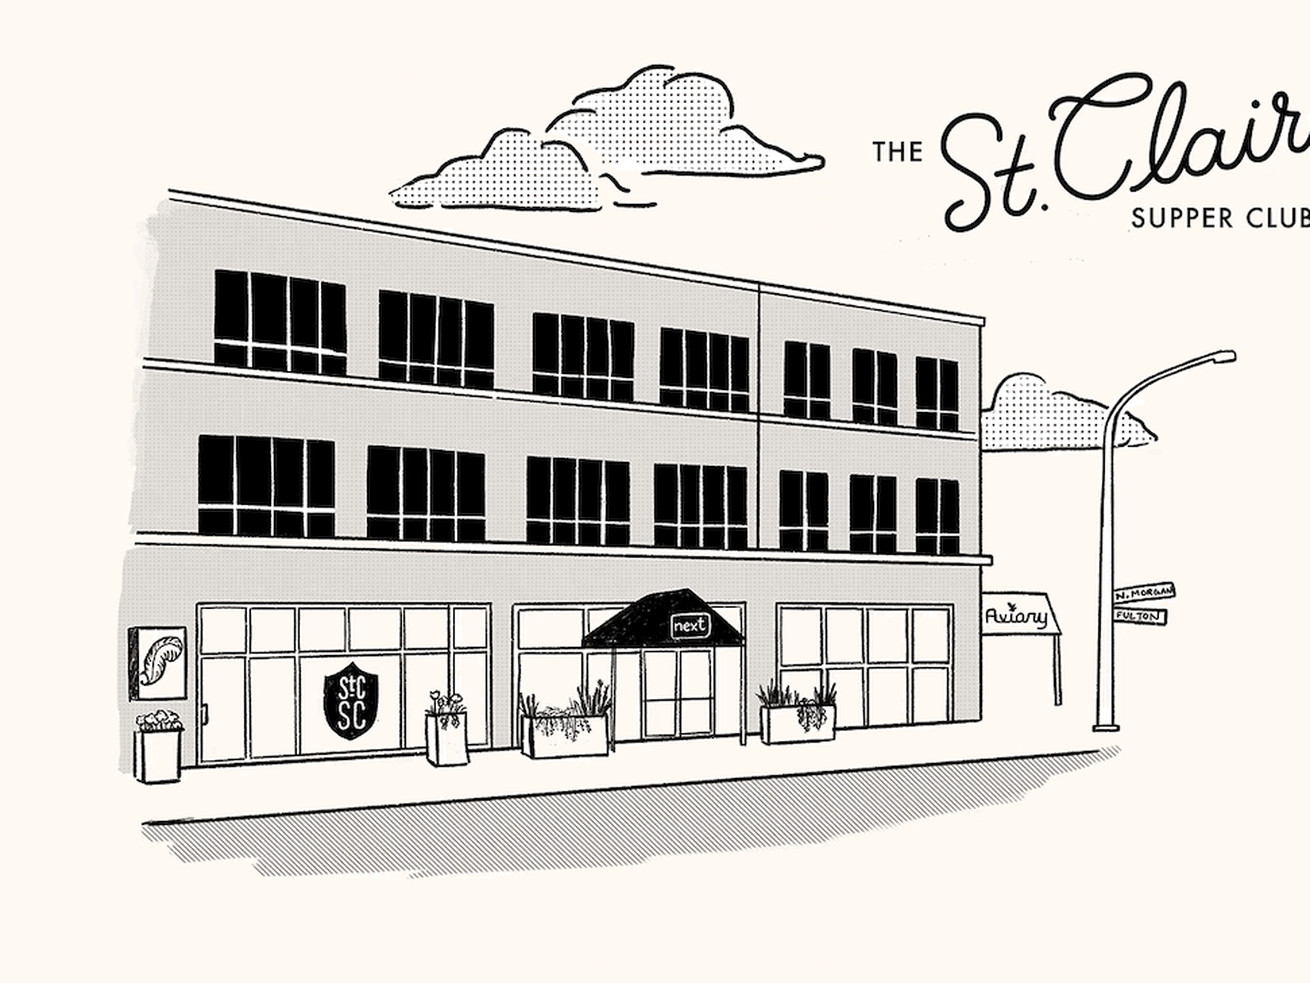 A rendering of the St. Clair Supper Club